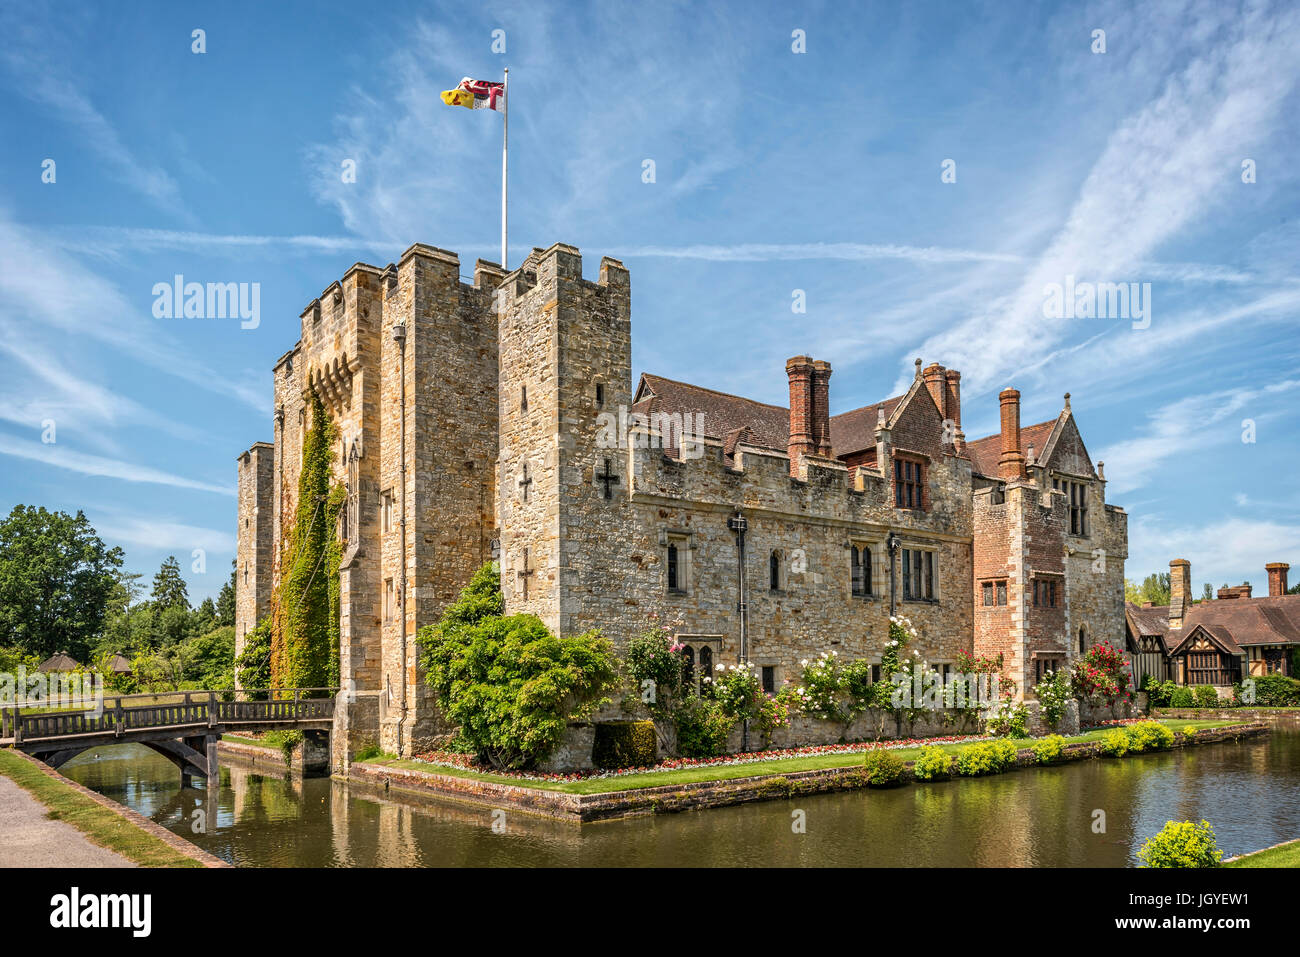 Hever, Kent, England - June 18, 2015. Hever castle as seen on 18 of June, 2015. The oldest part of the castle dates Stock Photo